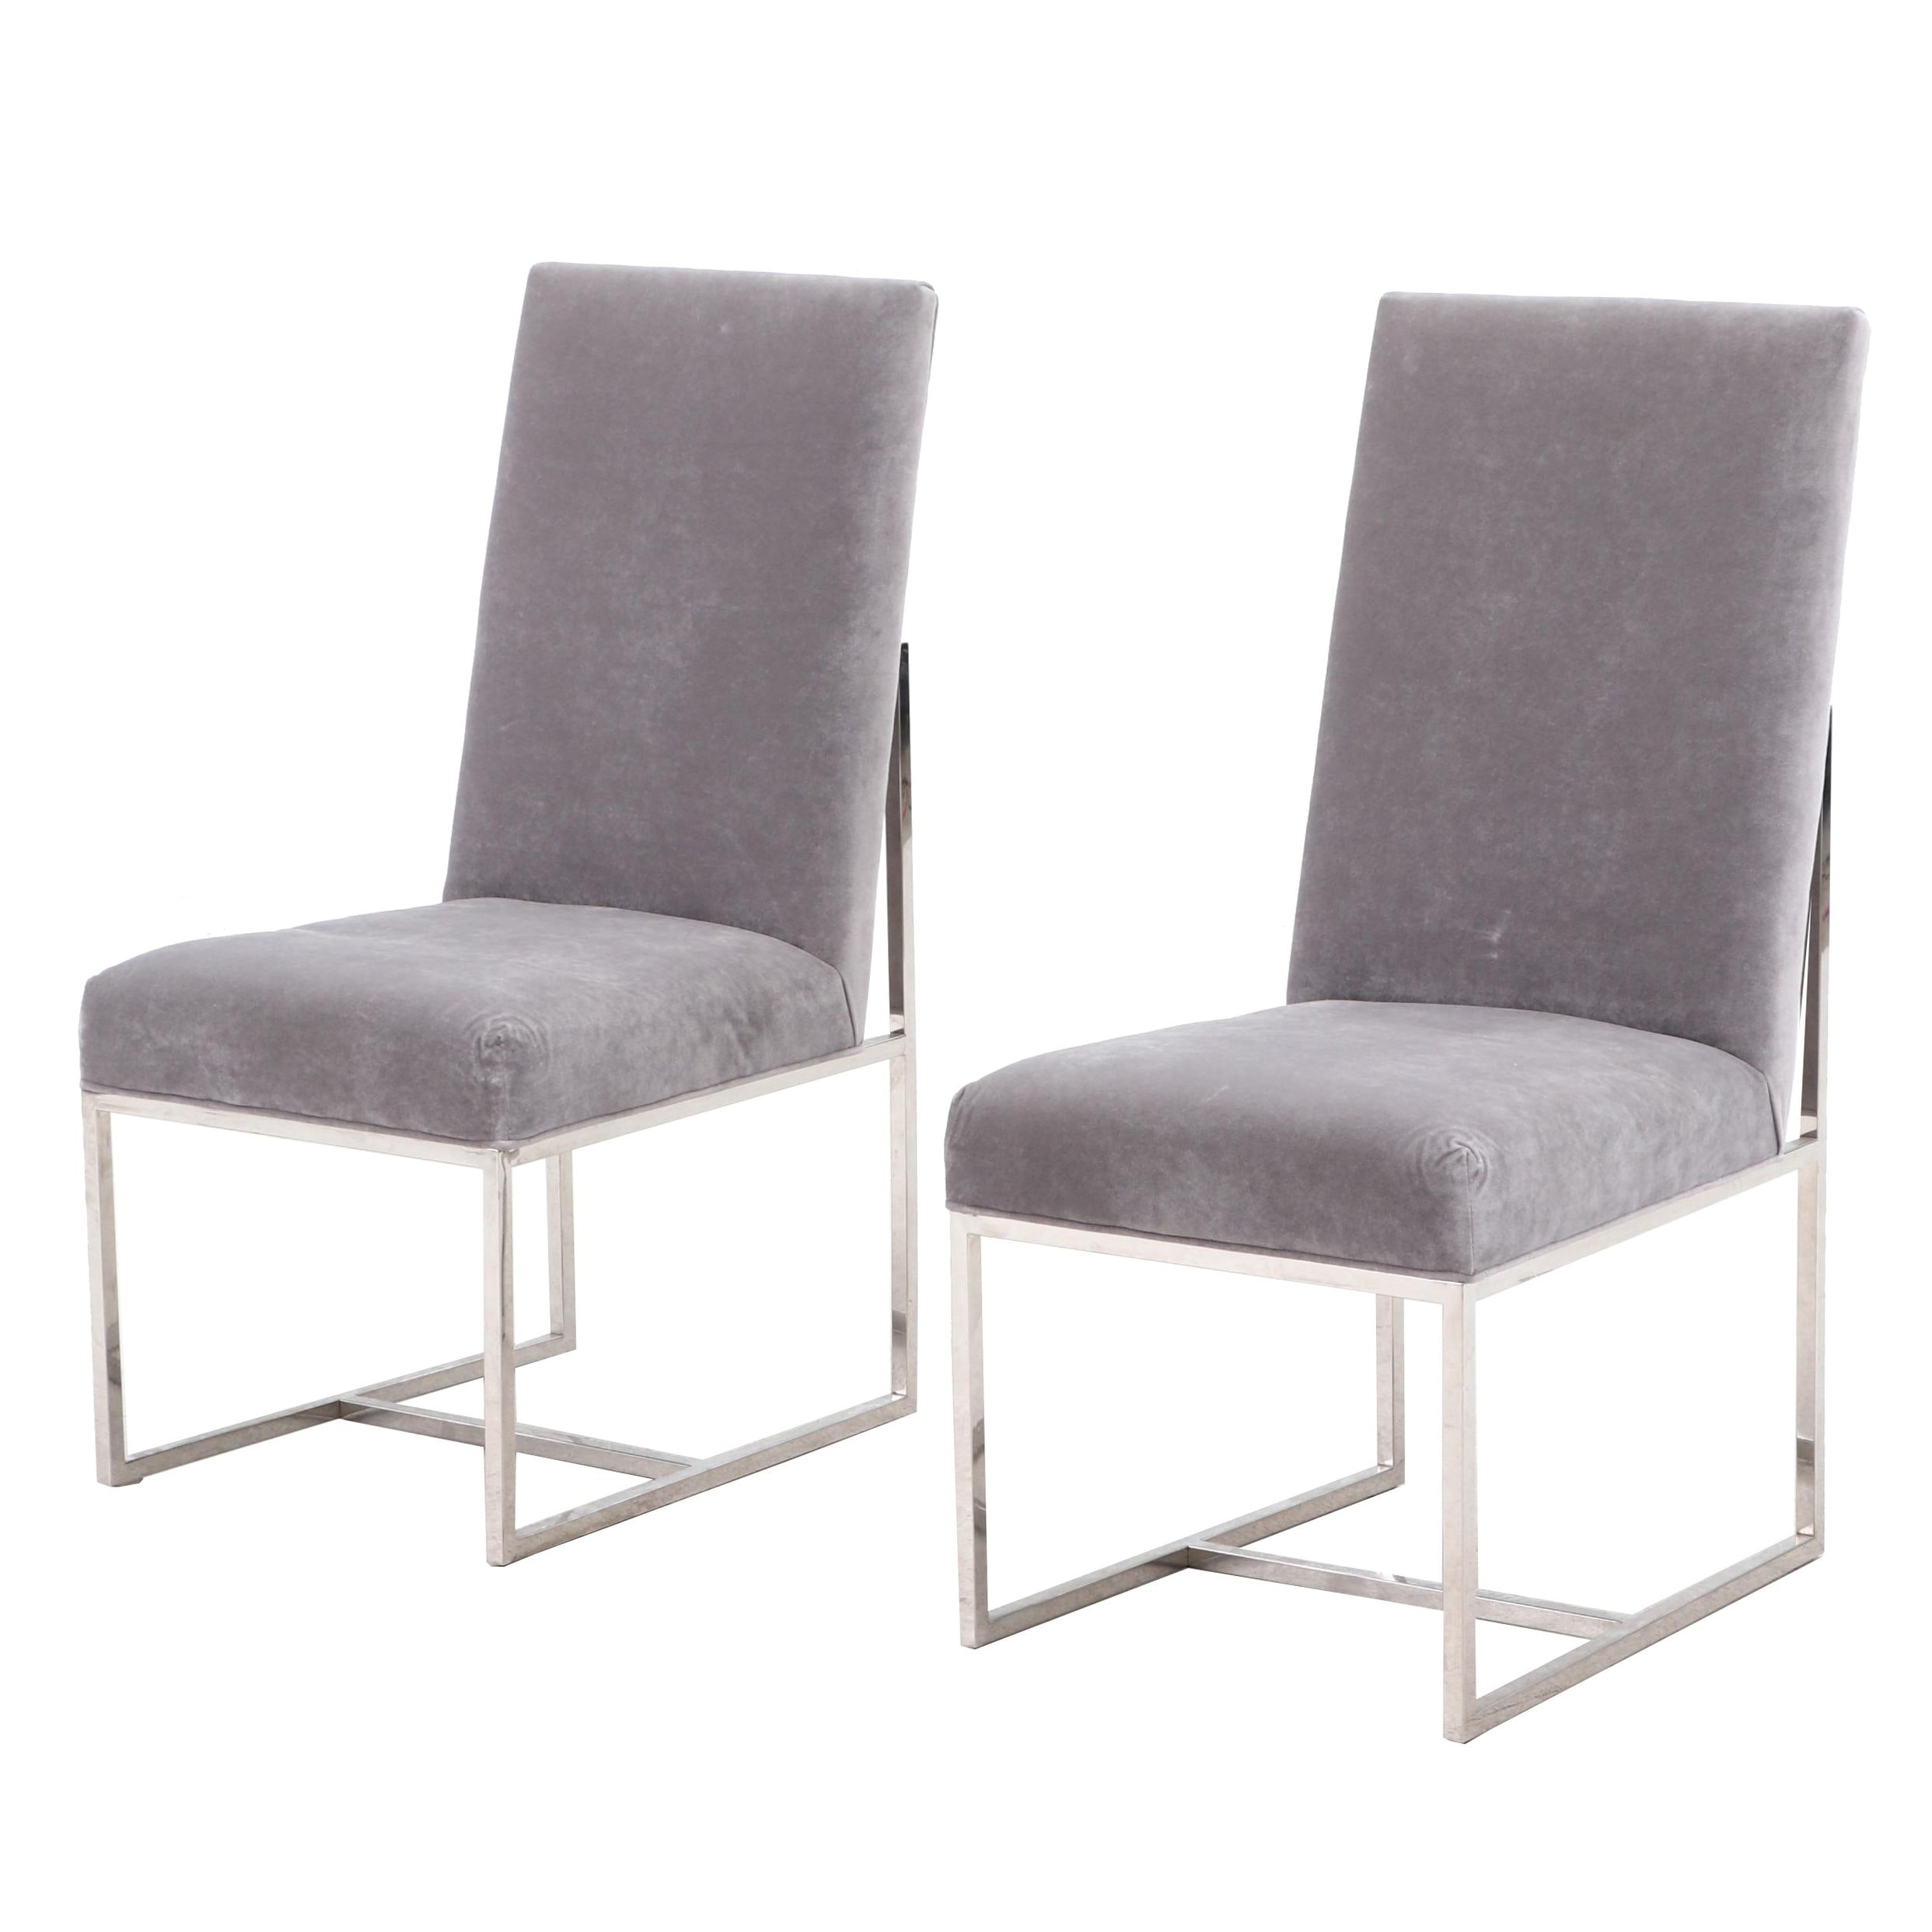 Contemporary Upholstered Chrome Finish Frame Side Chairs